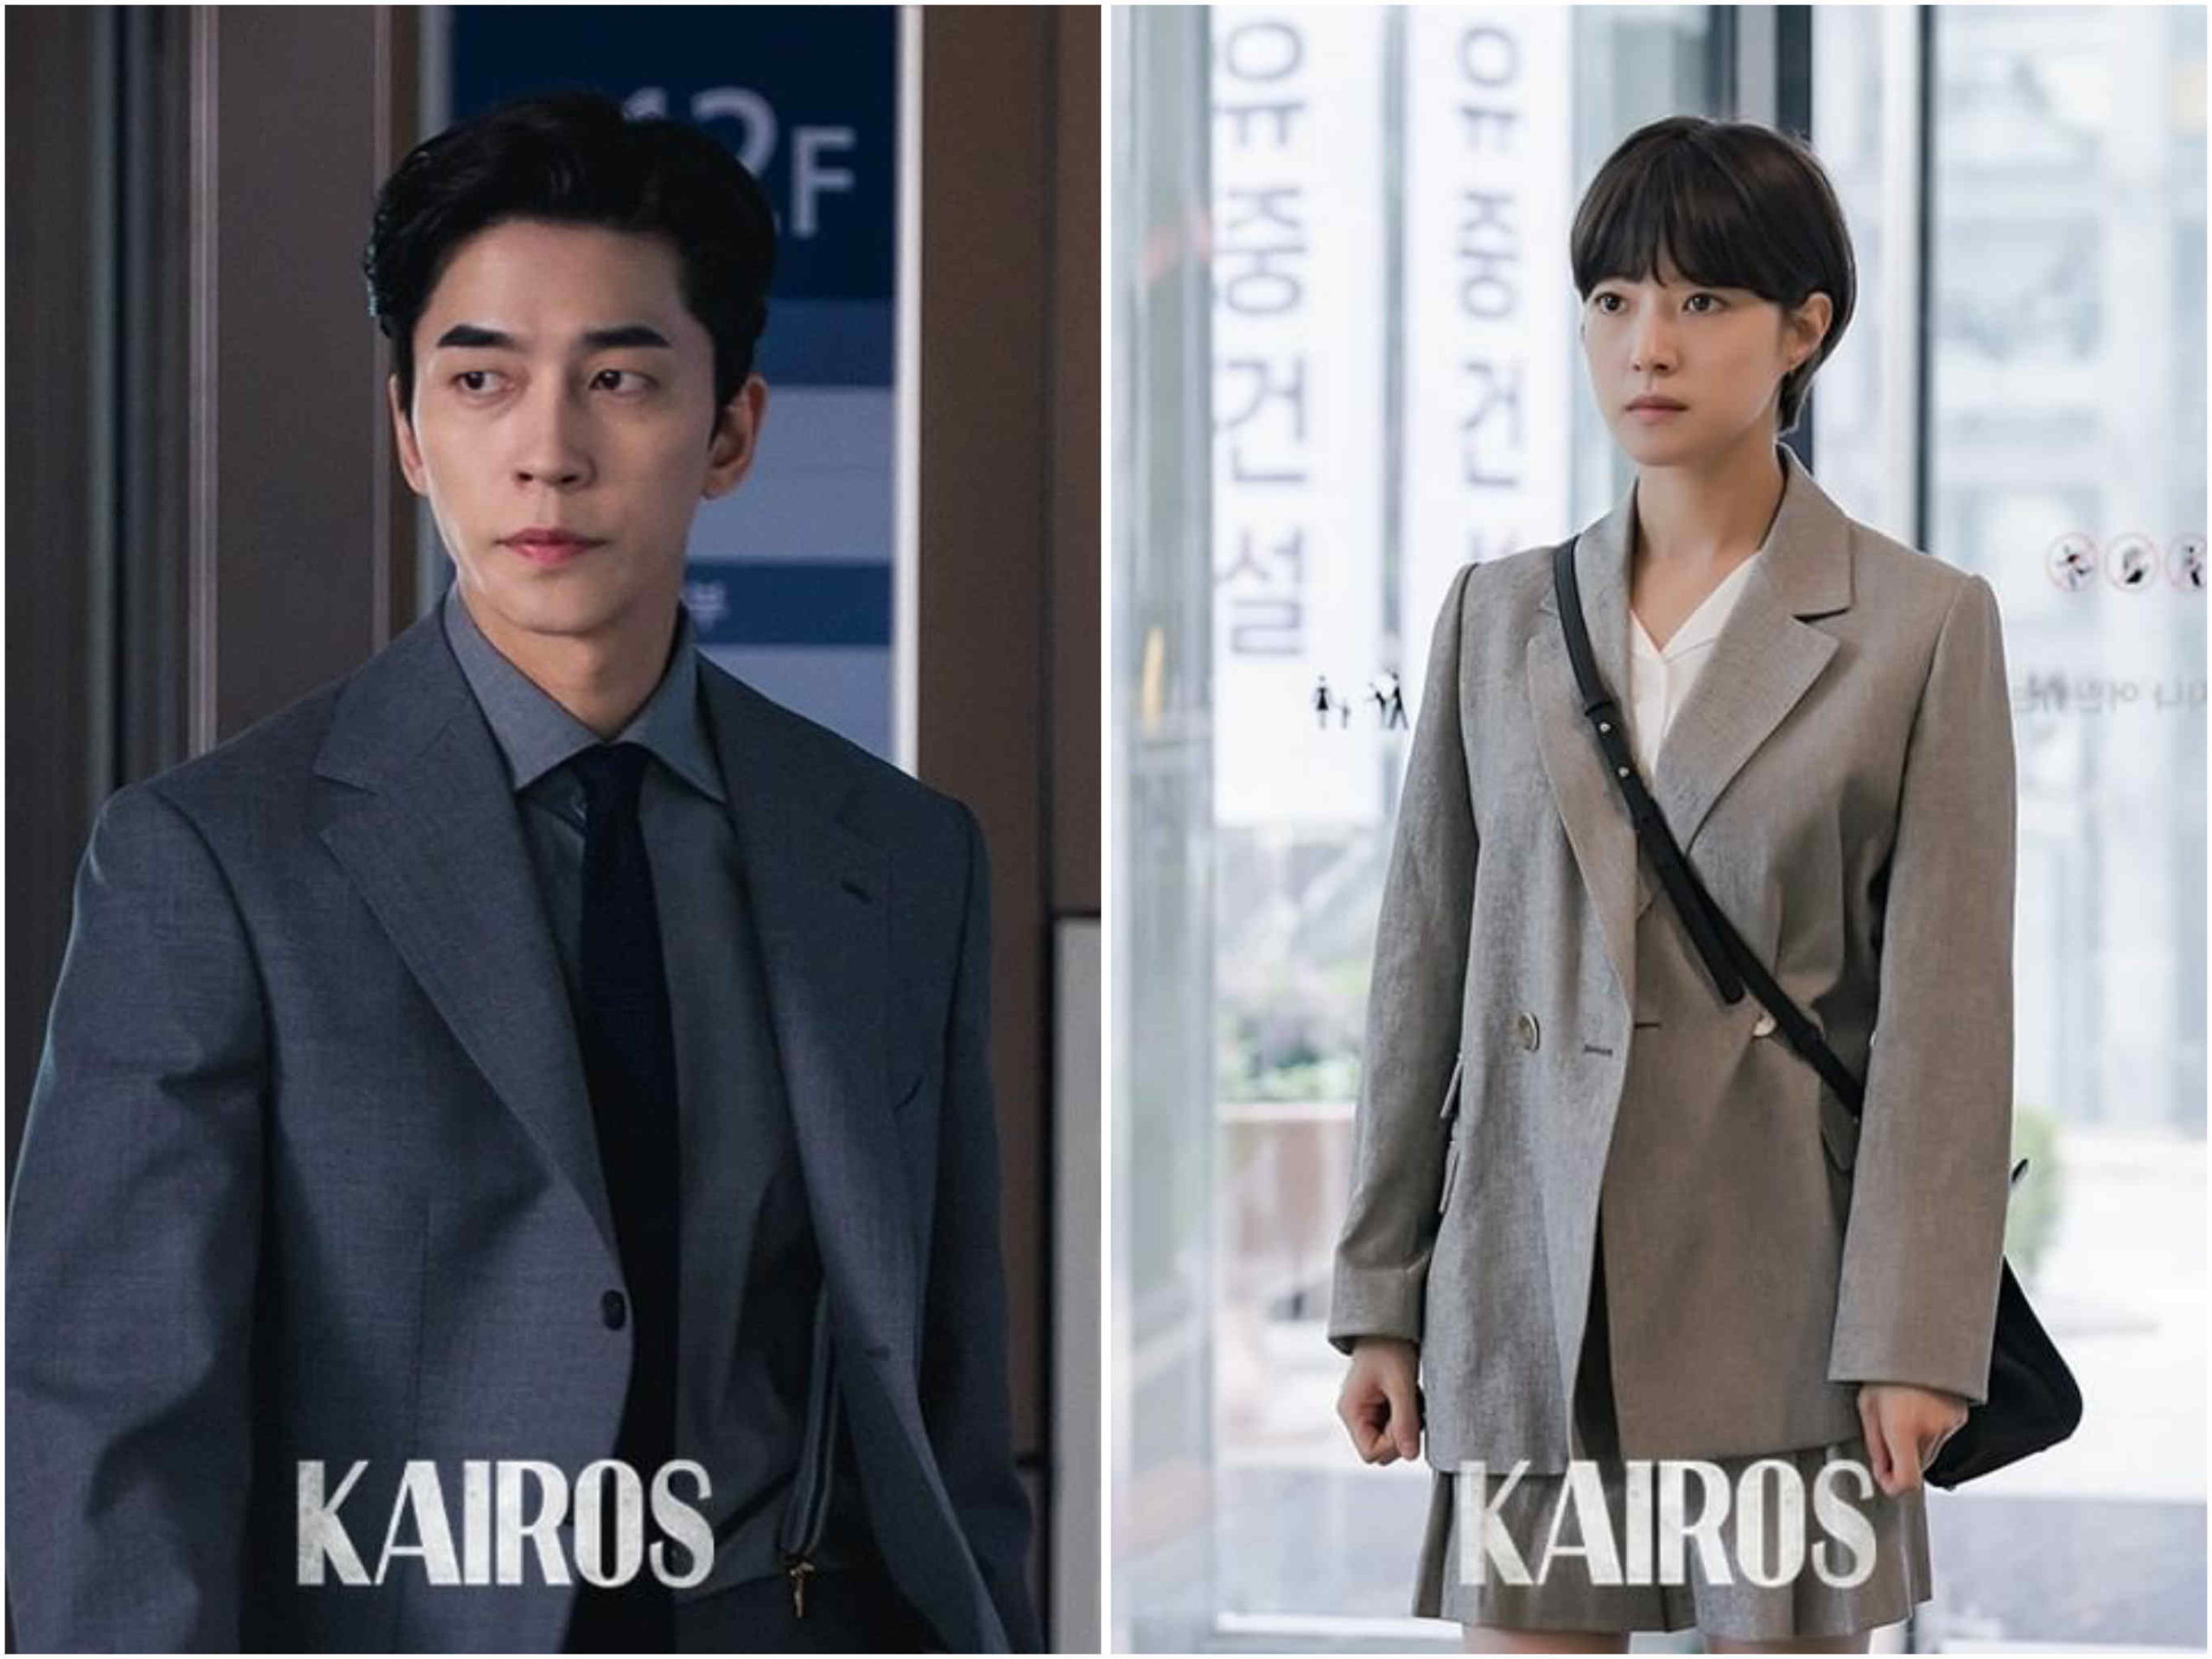 New Korean Dramas 2020 - Kairos, Shin Sung-rok, Lee Se-young